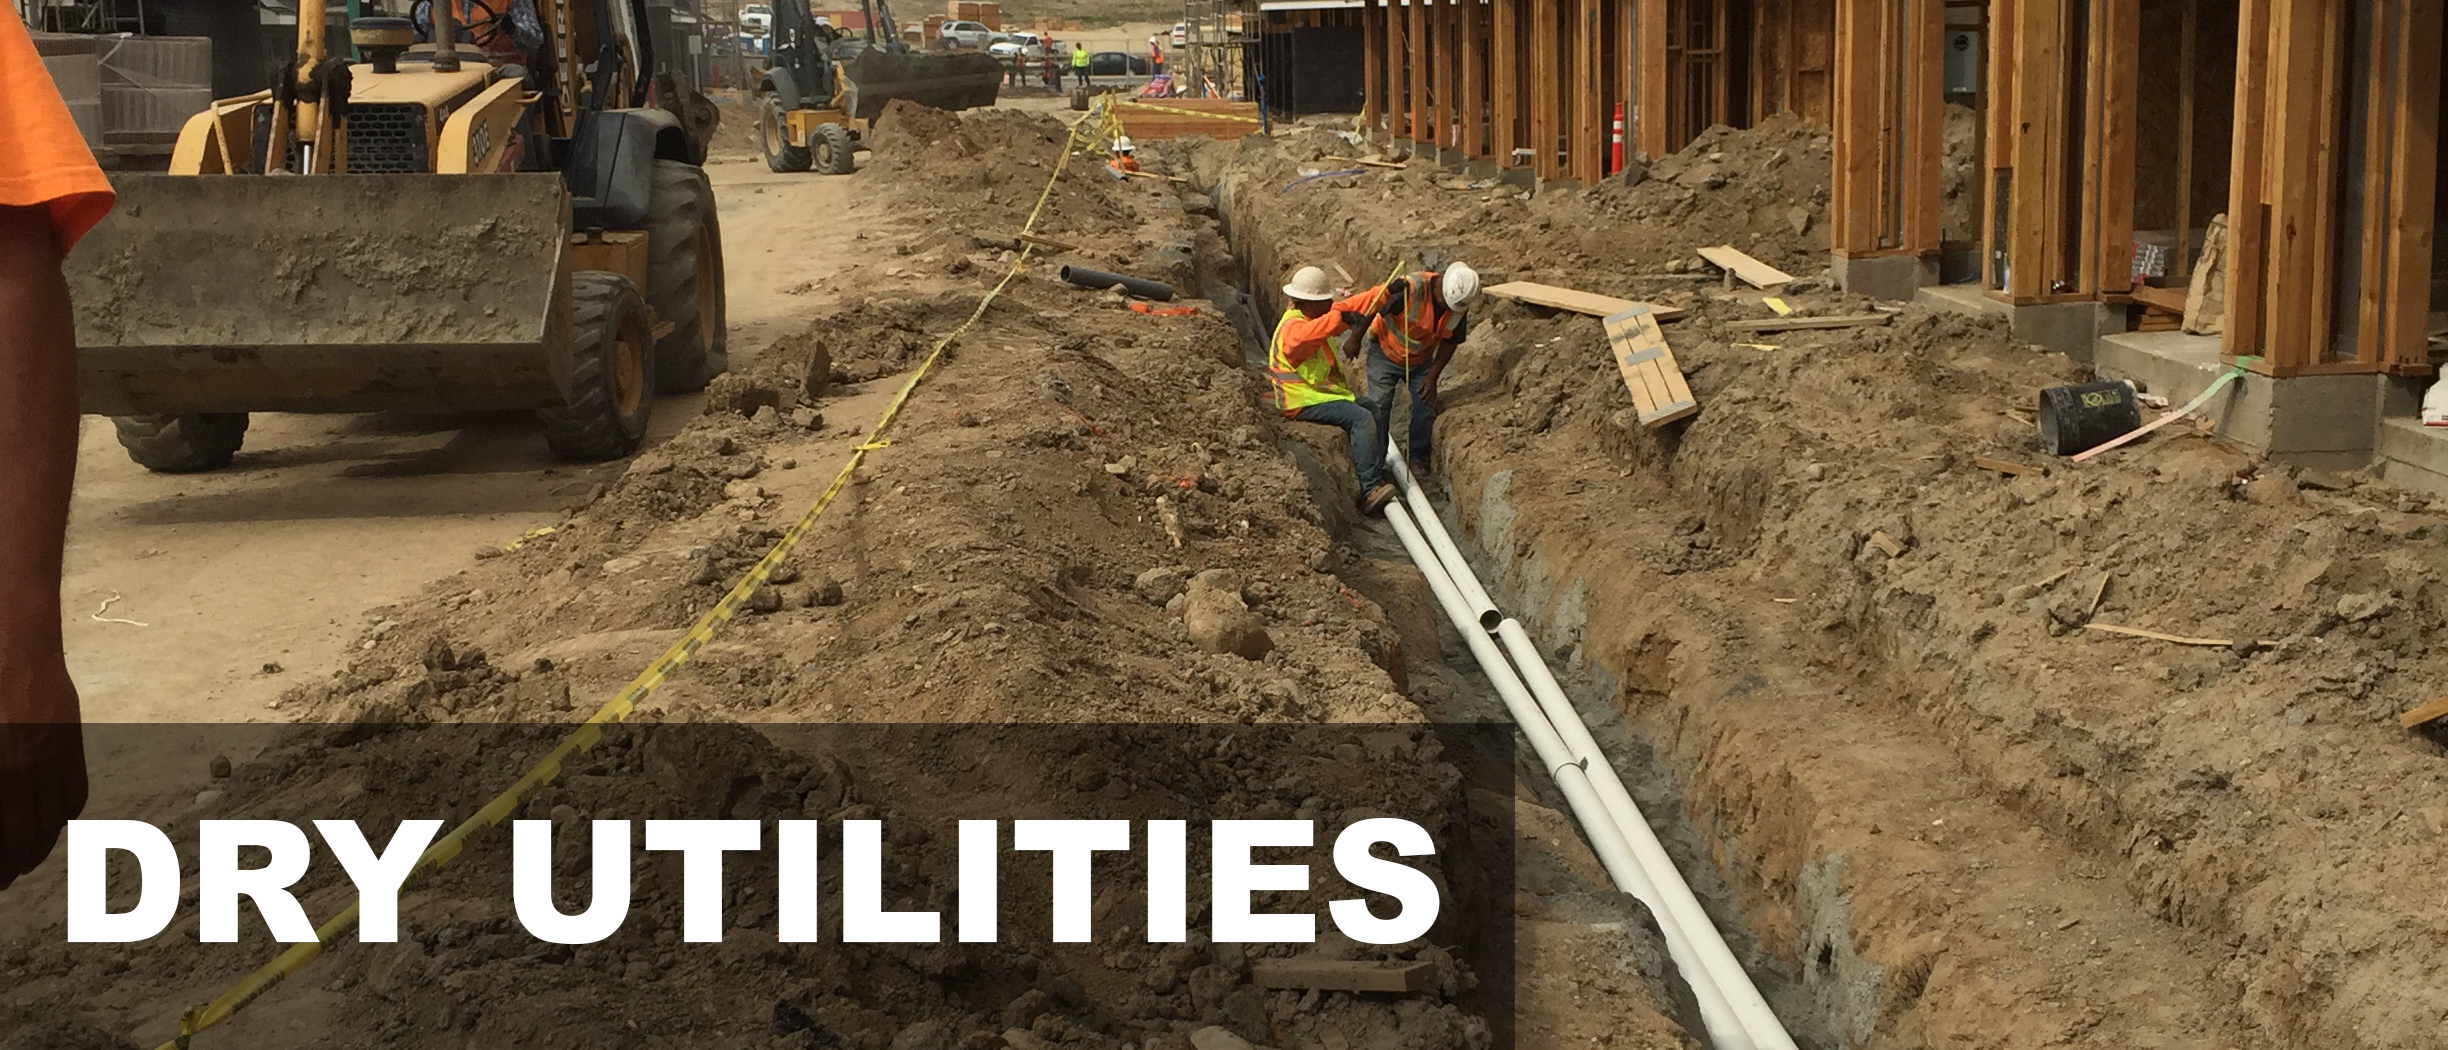 dry utility consulting, dry utilities, dry utility services